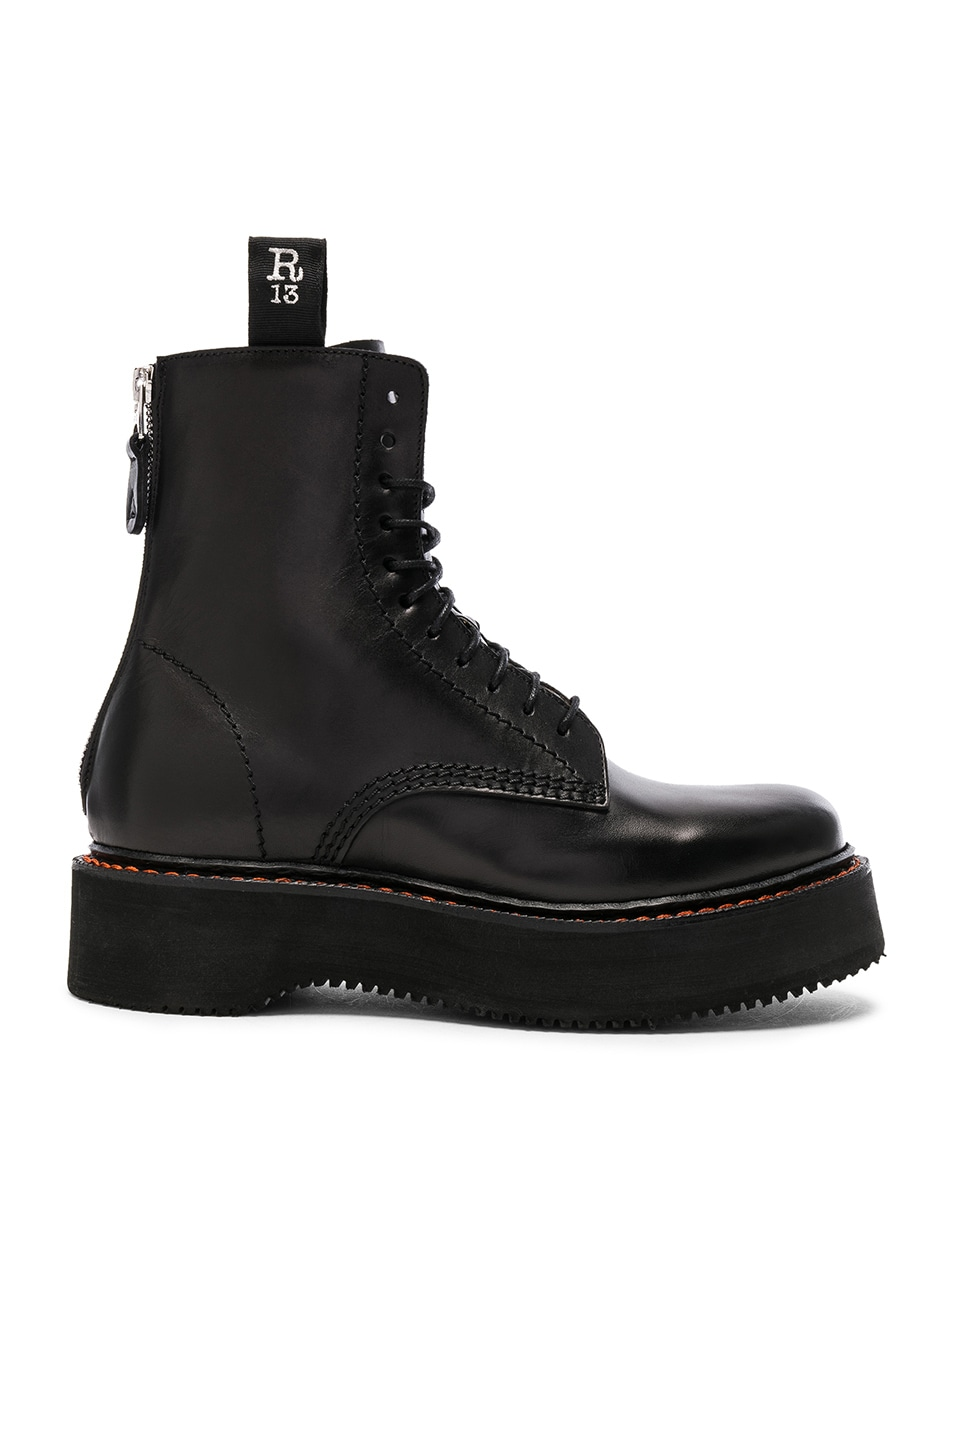 Stacked Multi-Strap Leather Boots, Black